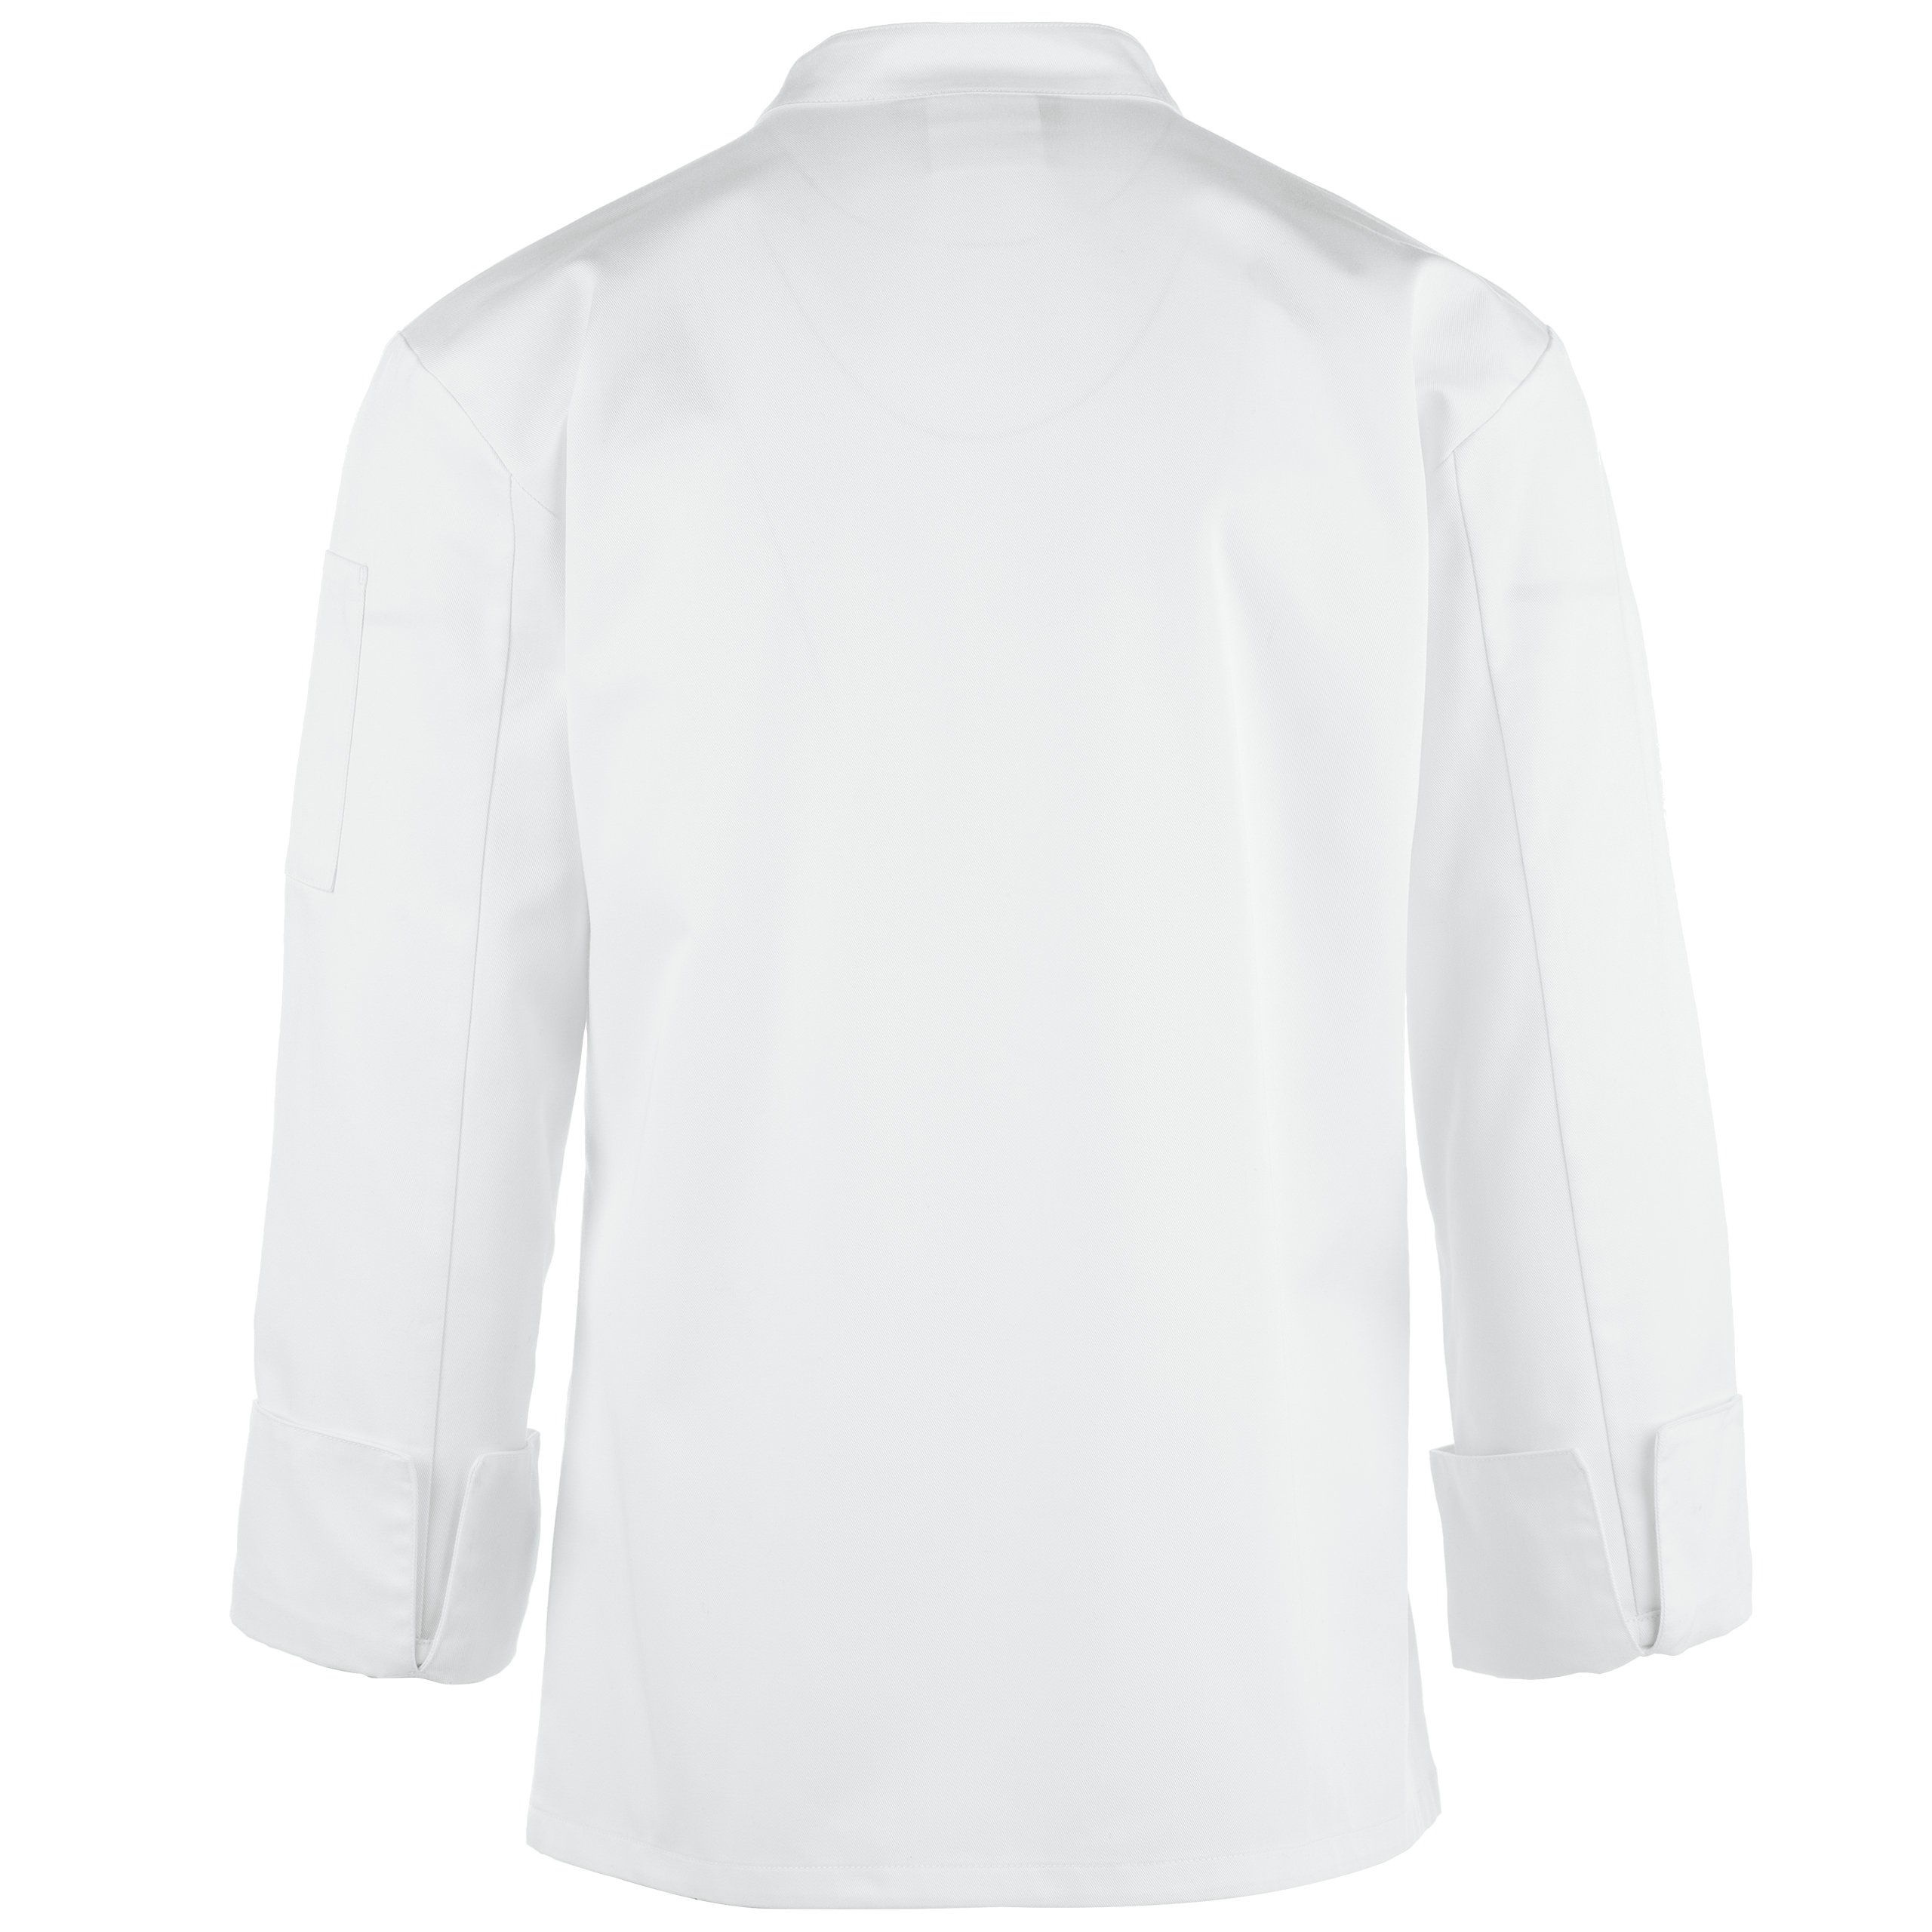 Unisex Long Sleeve Chef Coat/Double Breasted/Plastic Button Reversible Front Closure (S-2X, 2 Colors) (White, Medium) by On The Line (Image #4)